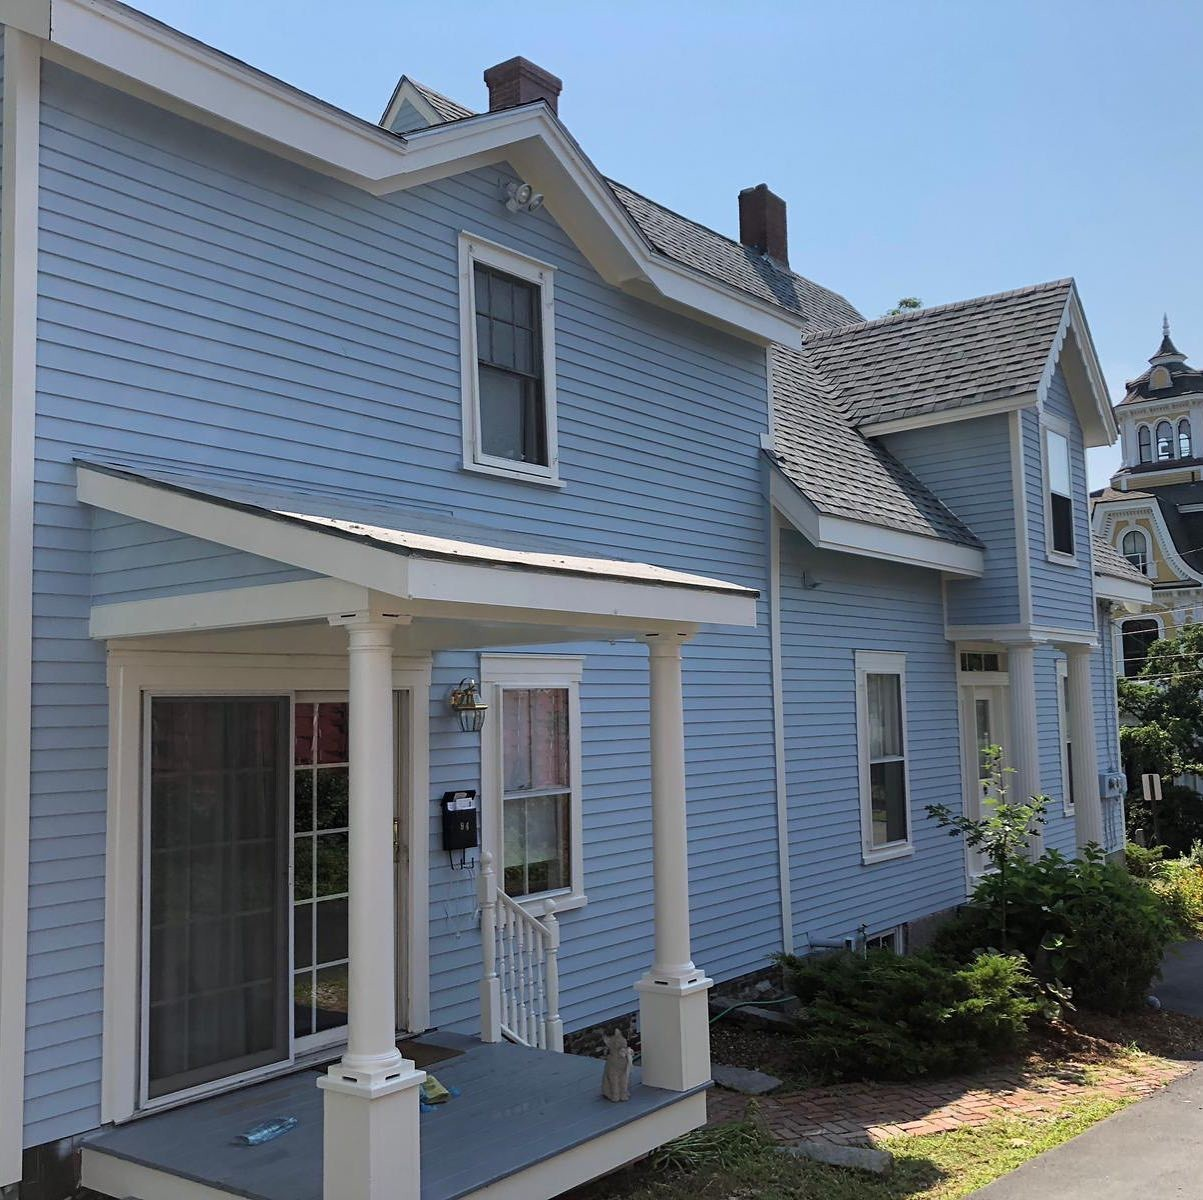 Commercial Painting and Cleaning Maynard MA